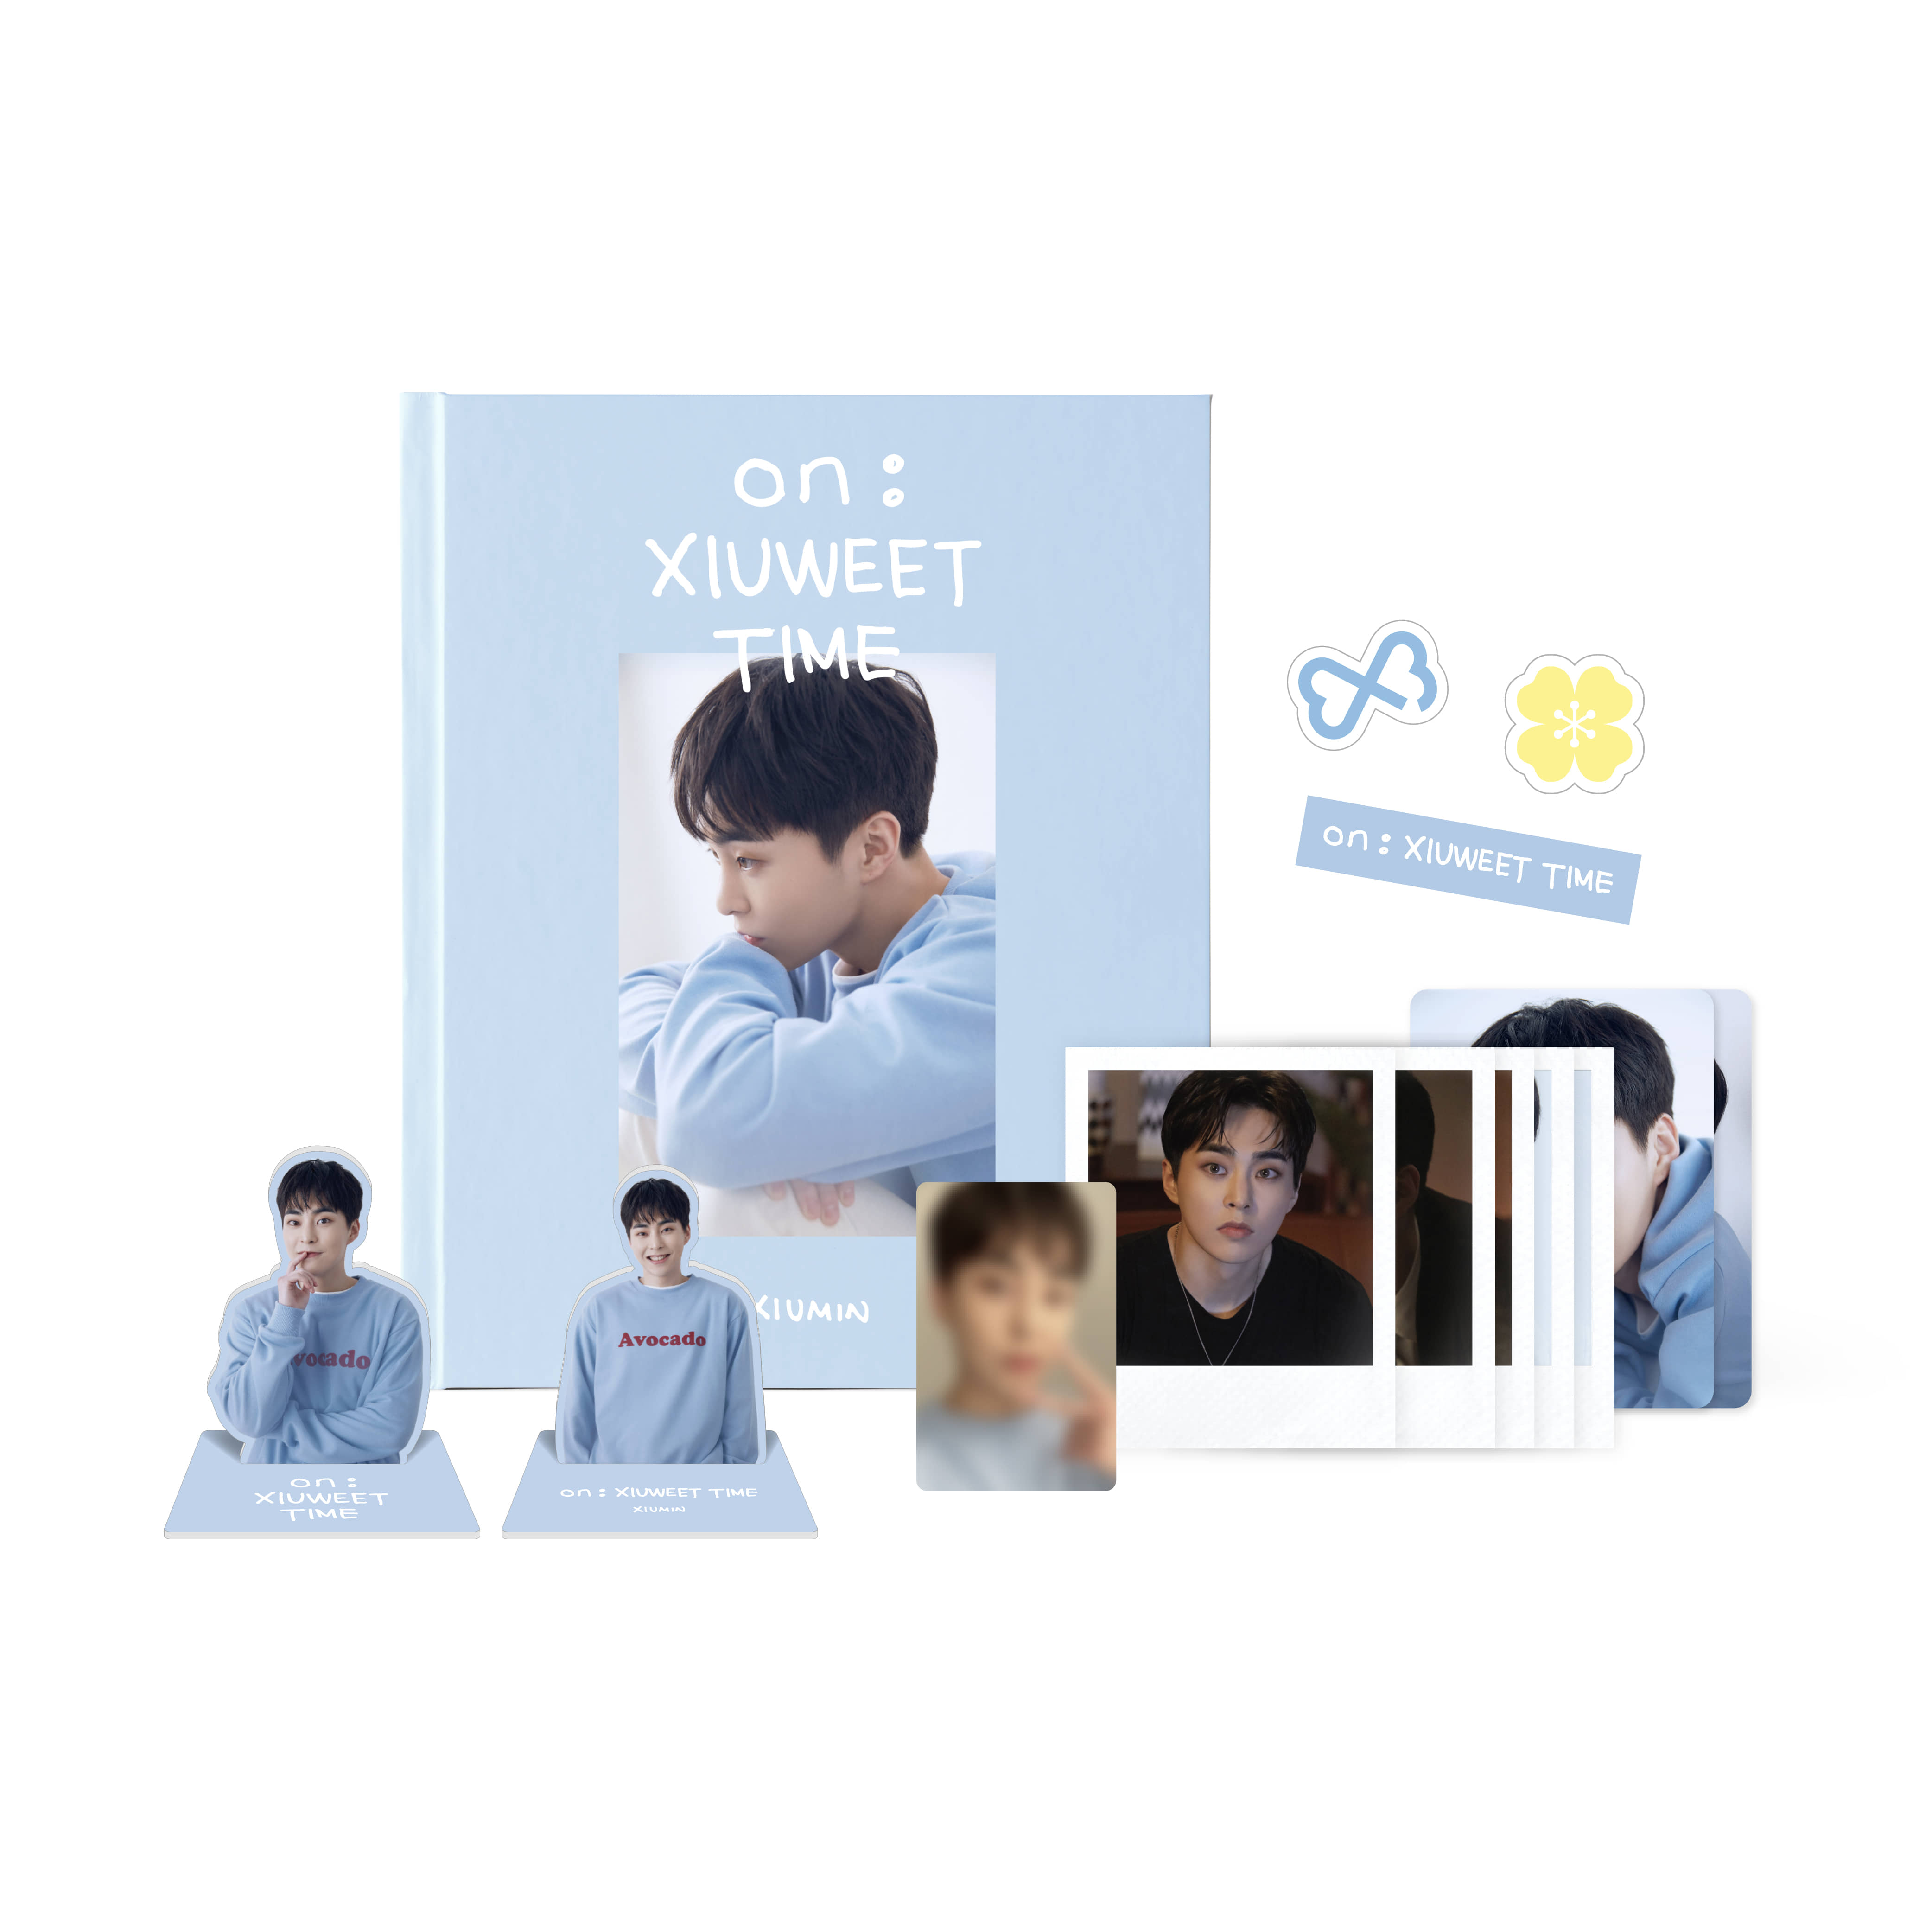 [PRE-ORDER] 엑소 시우민(EXO XIUMIN) - ON : XIUWEET TIME PHOTO STORY BOOK케이팝스토어(kpop store)